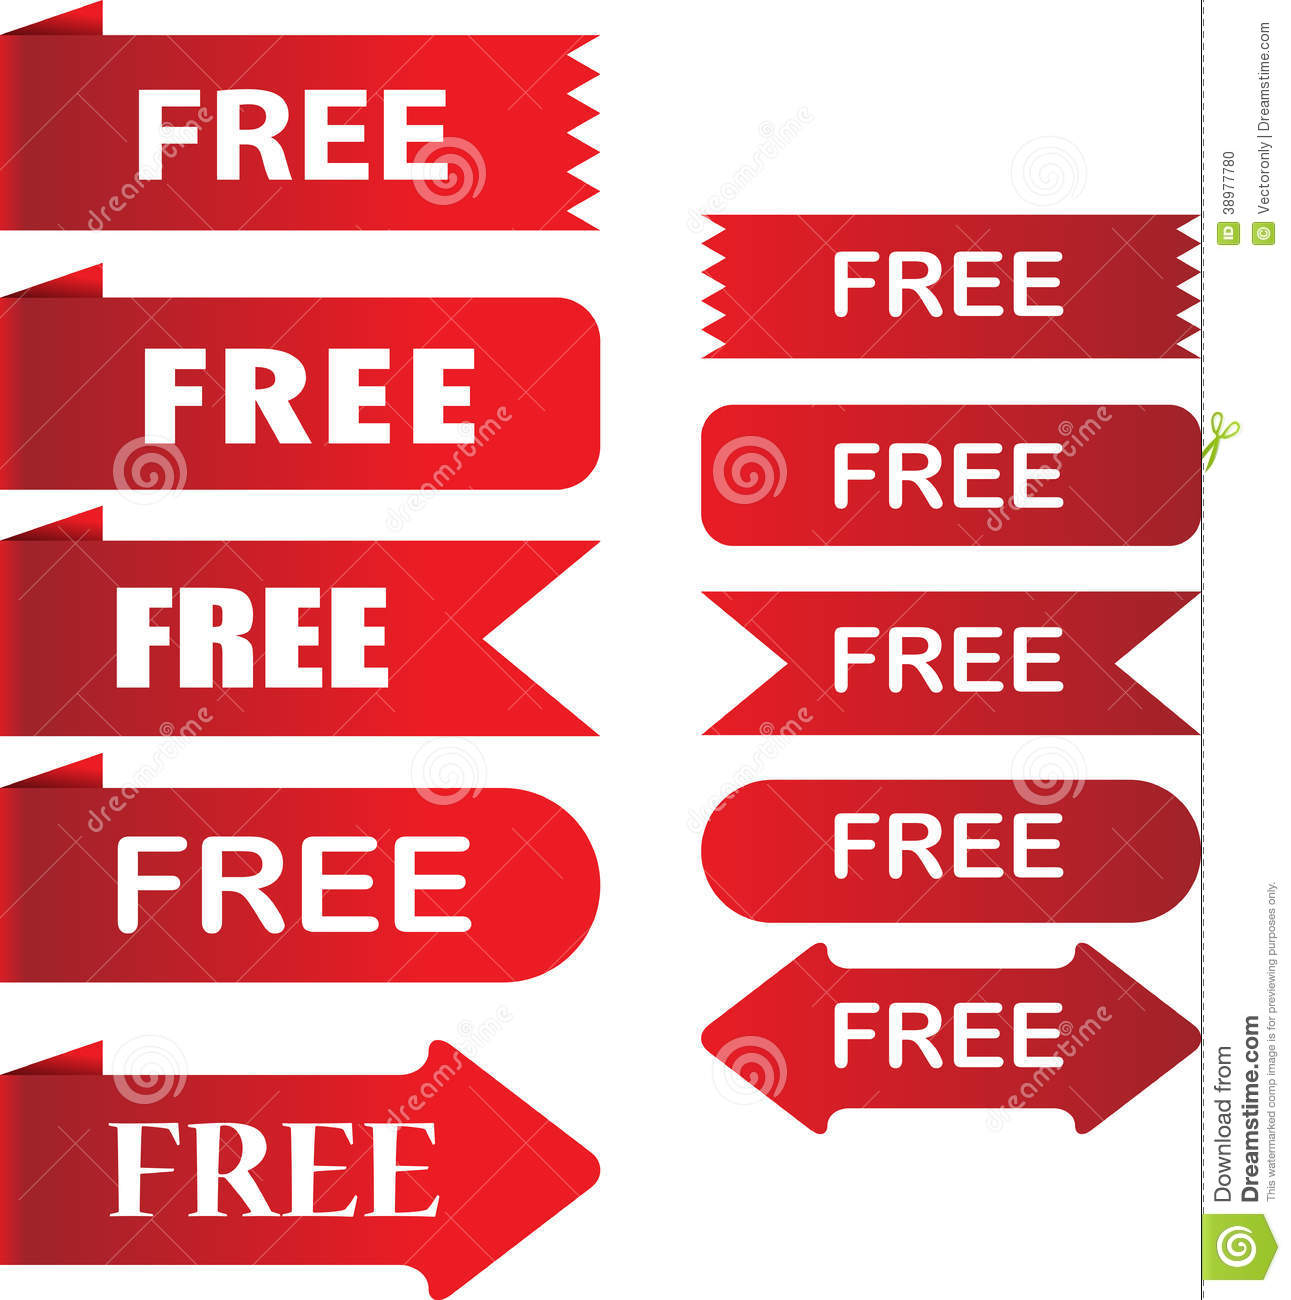 how to download off soundcloud free